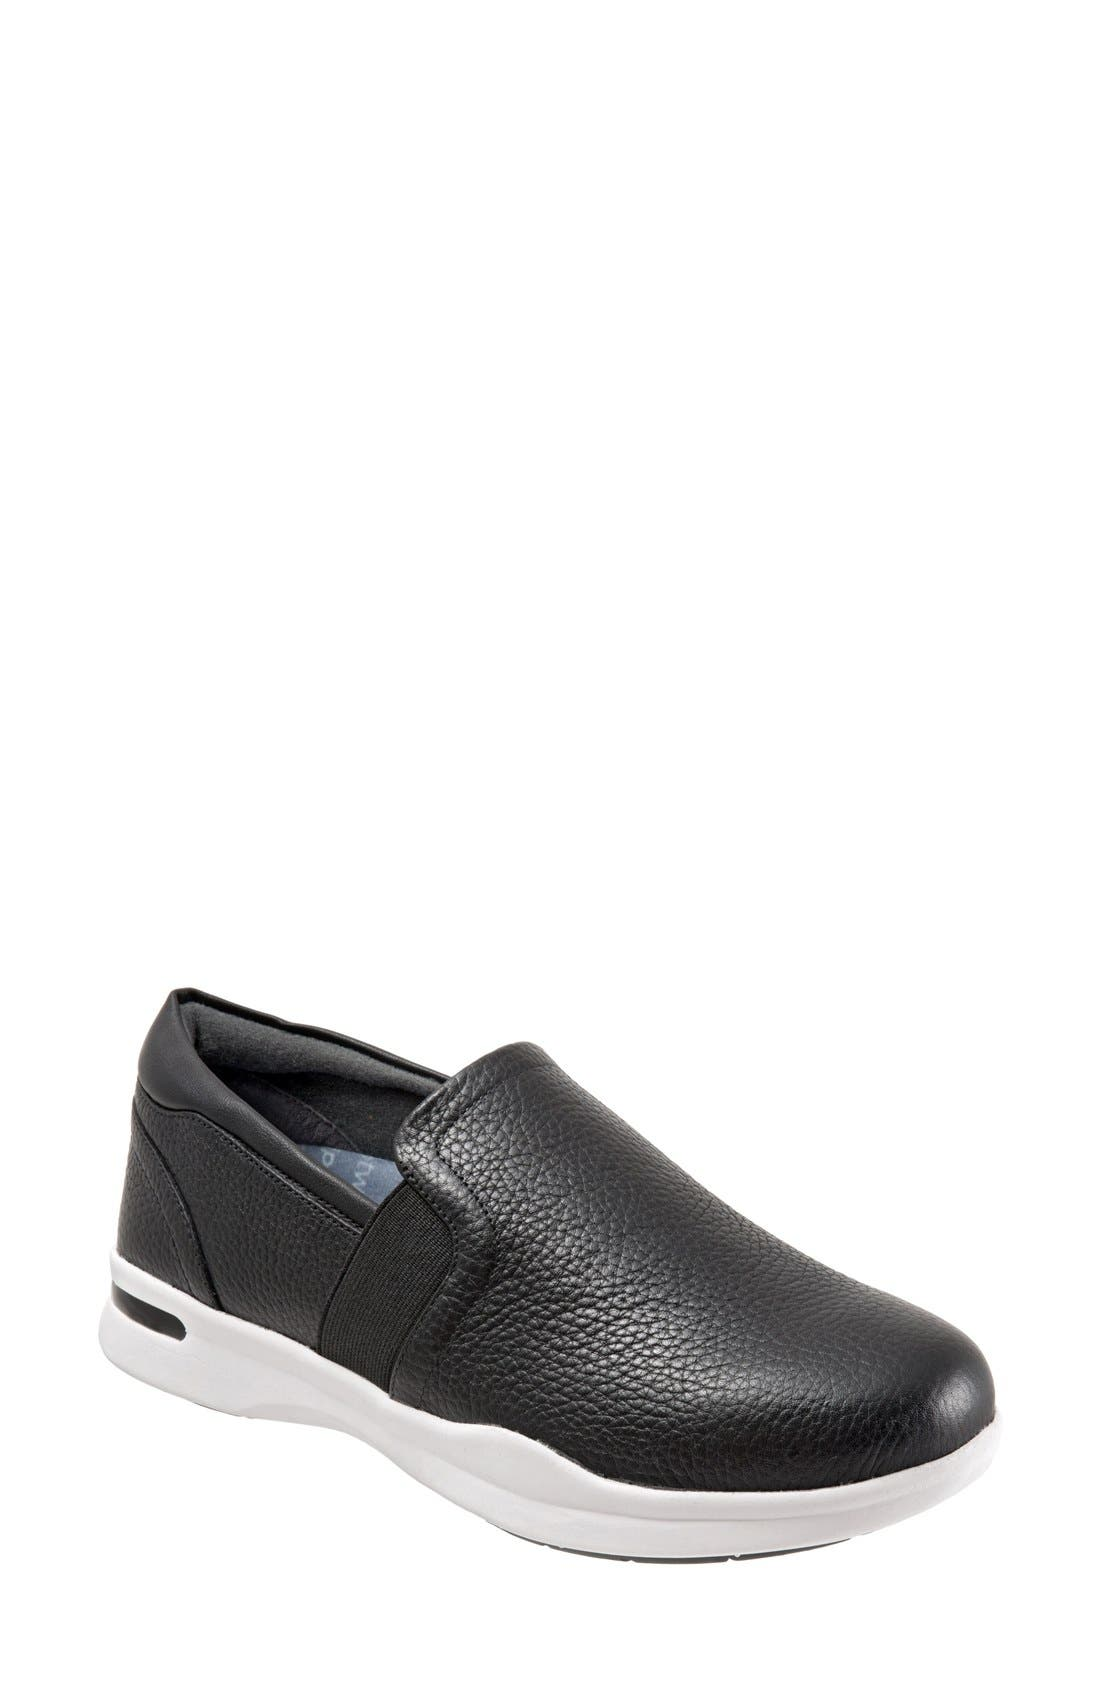 'Vantage' Slip-On Sneaker,                         Main,                         color, 001